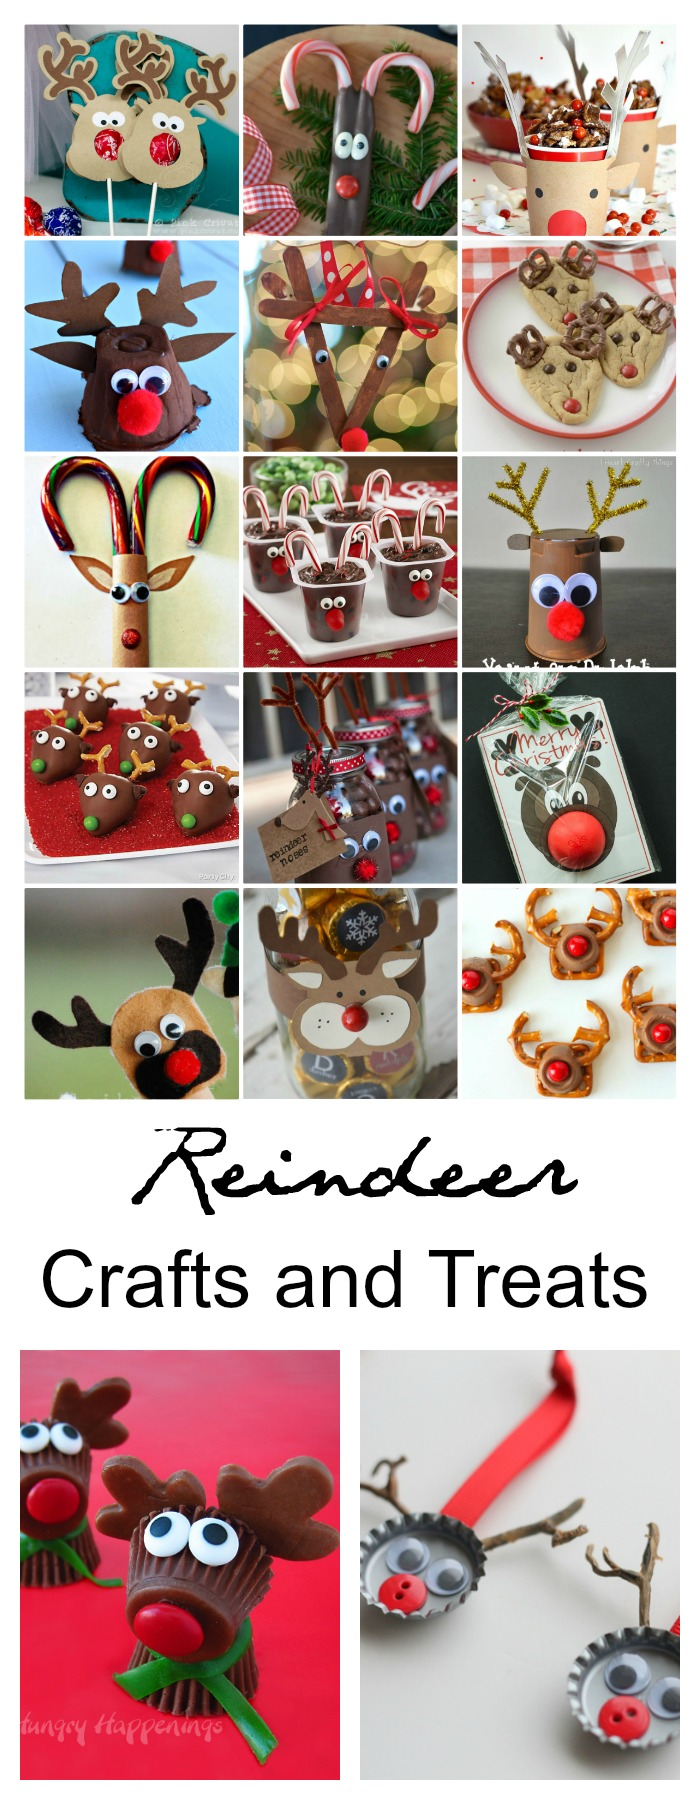 Reindeer-Crafts-and-Treats-Pin